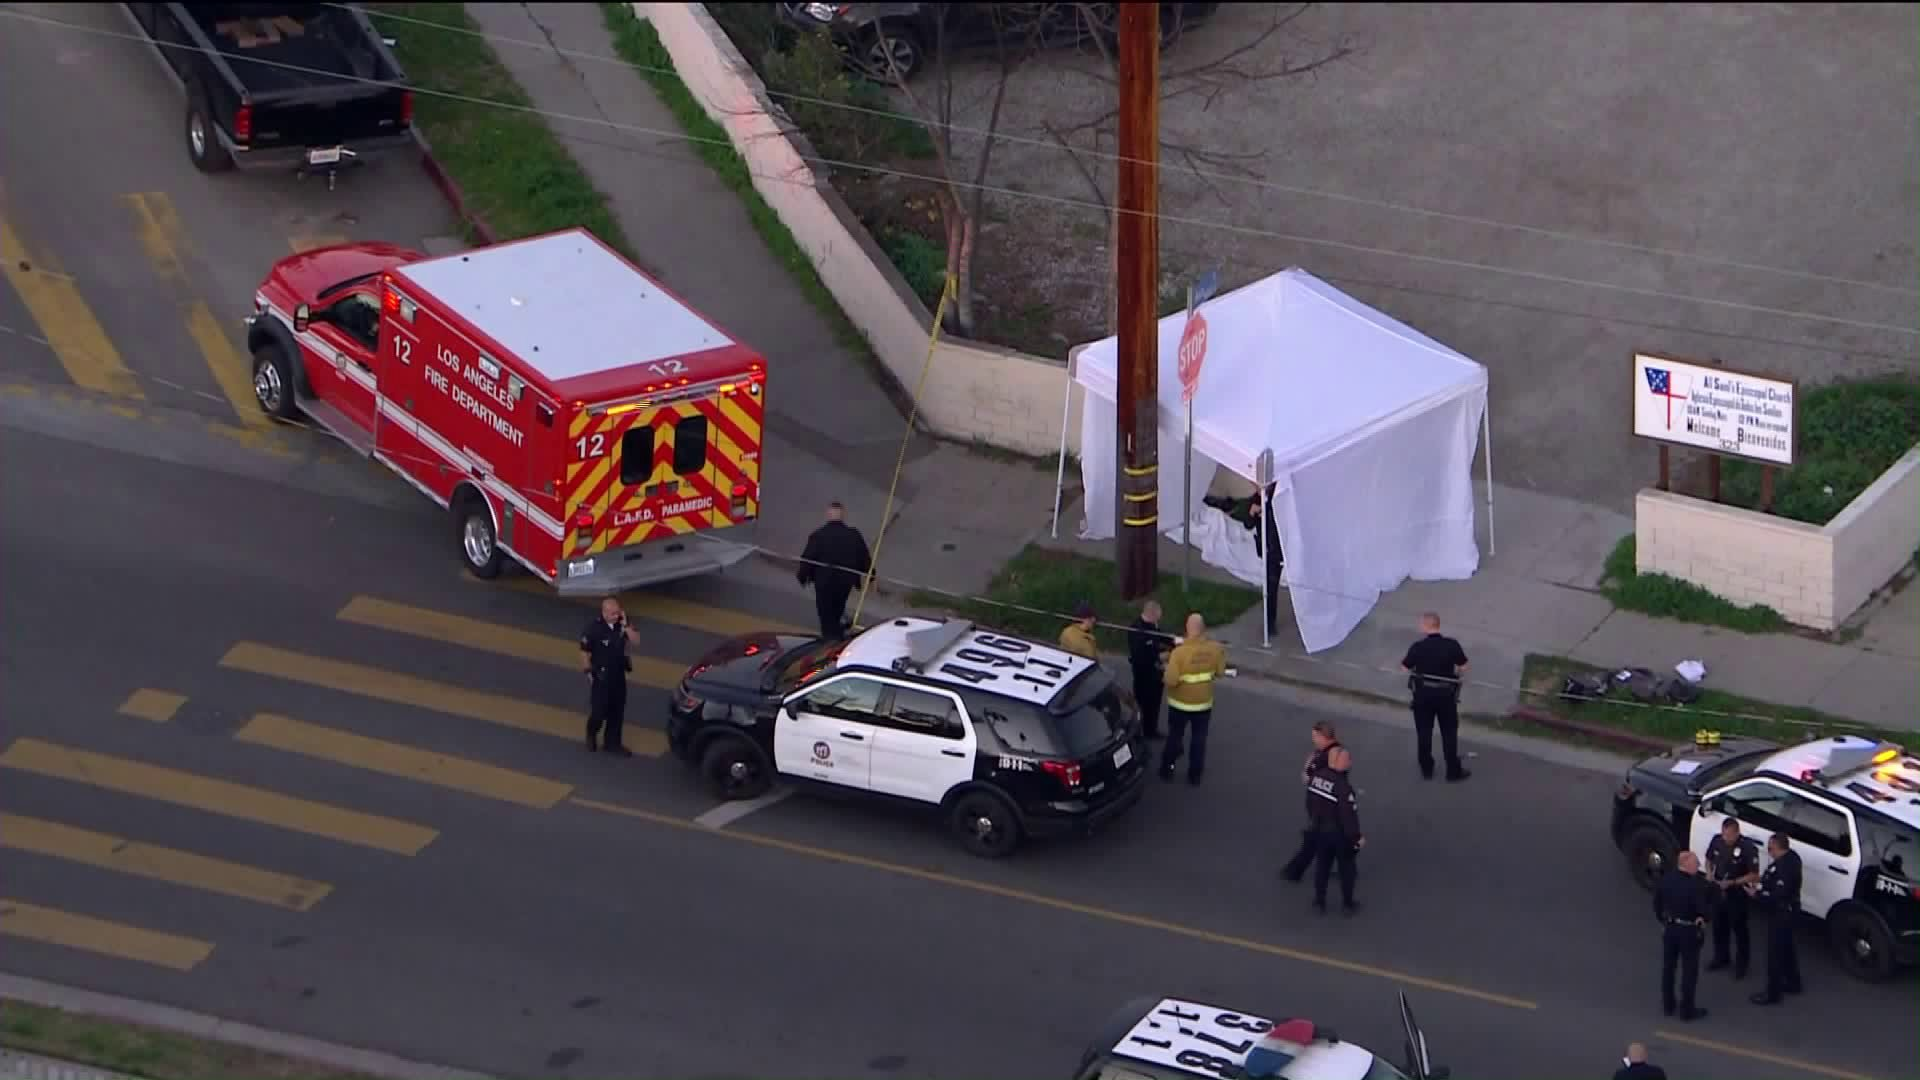 Authorities respond to investigate a fatal shooting in Highland Park on Feb. 11, 2020. (Credit: KTLA)